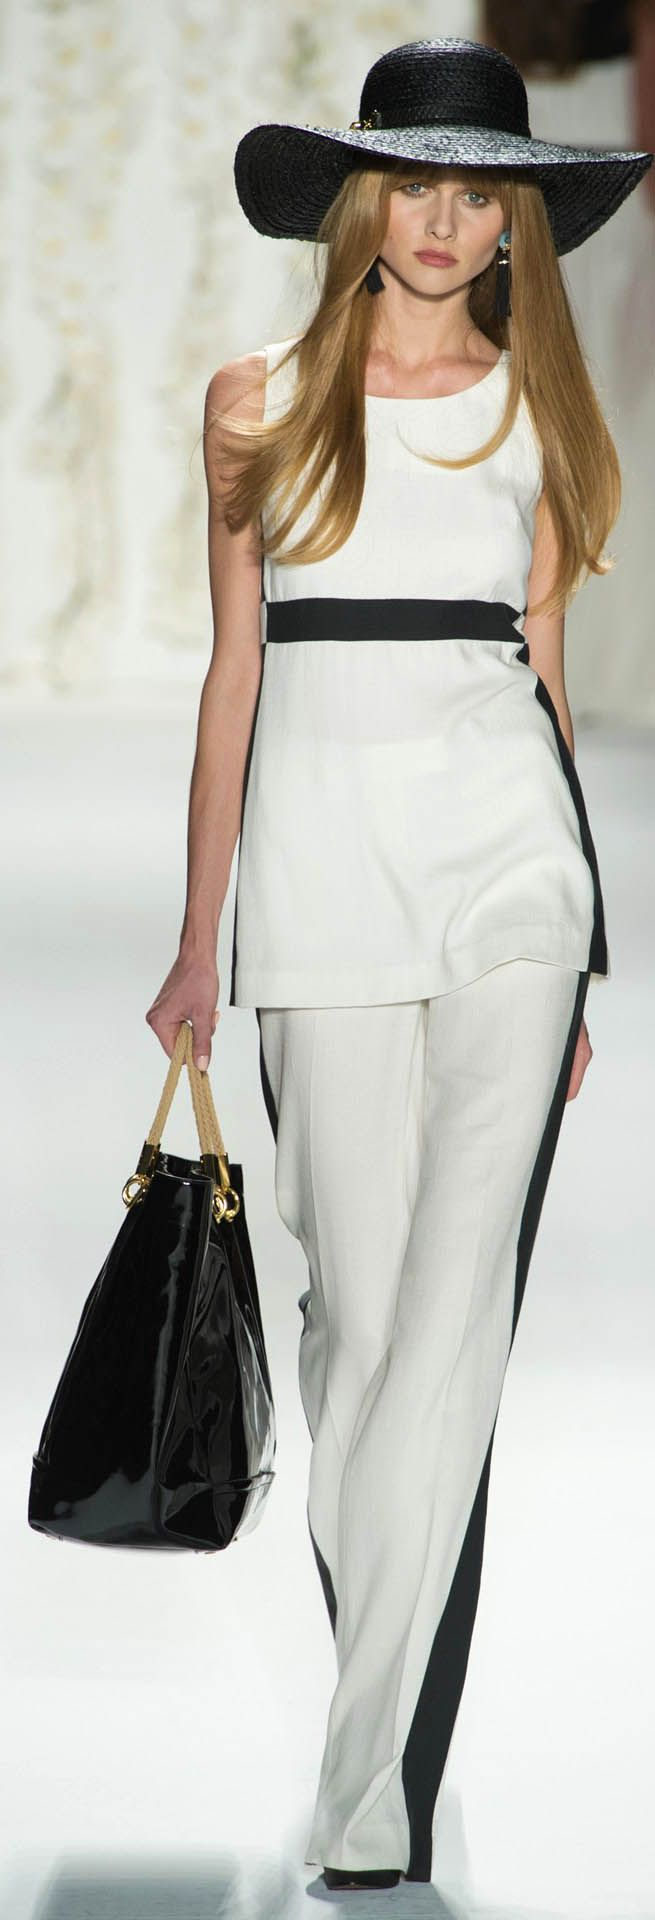 Discussion on this topic: Rachel Zoe SpringSummer 2013 RTW – New , rachel-zoe-springsummer-2013-rtw-new/